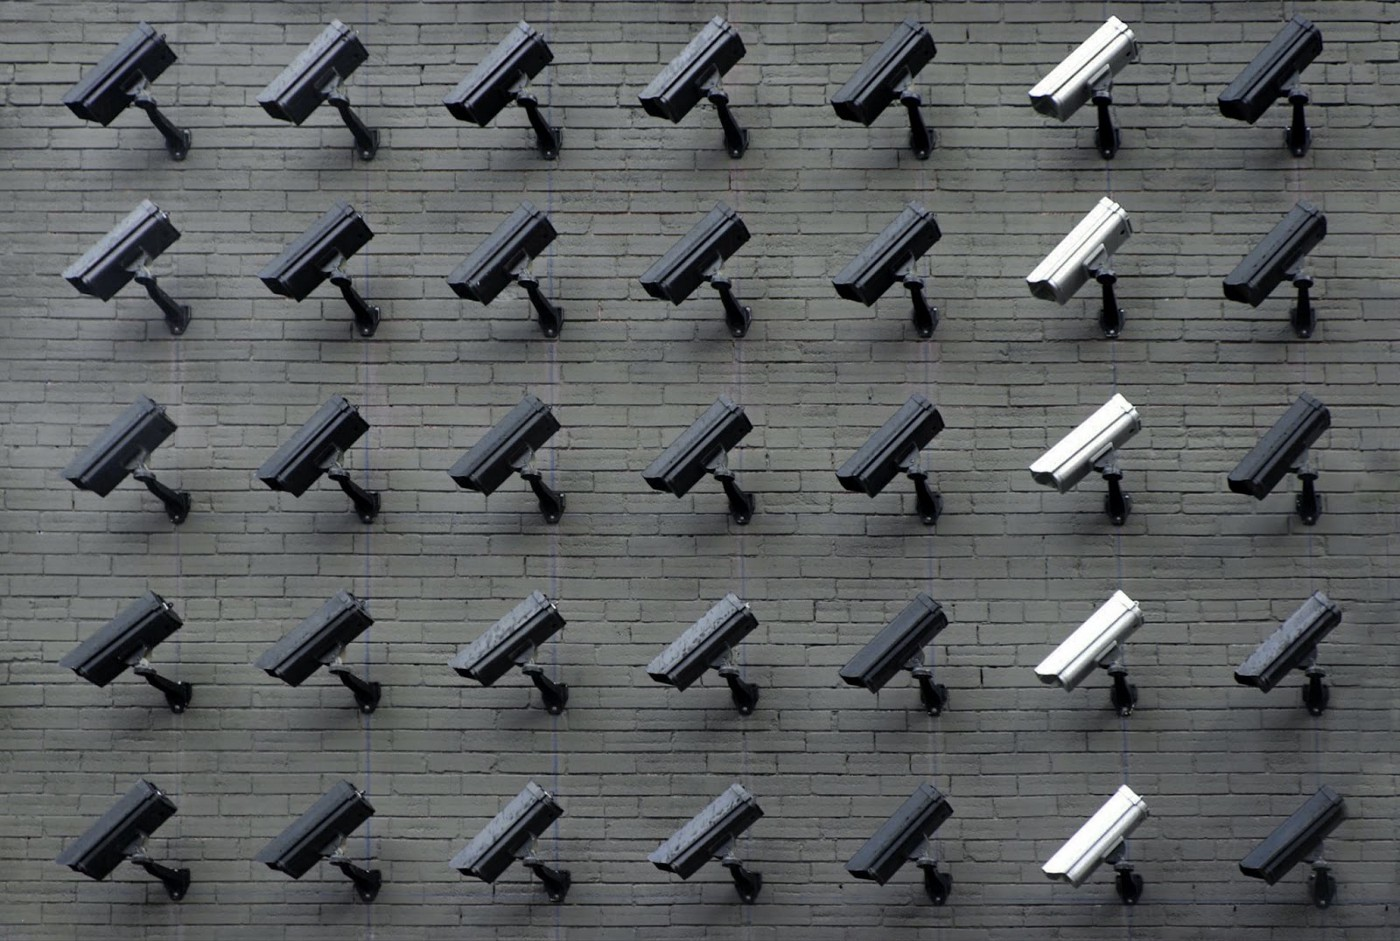 A brick wall is filled with rows and rows of security cameras.